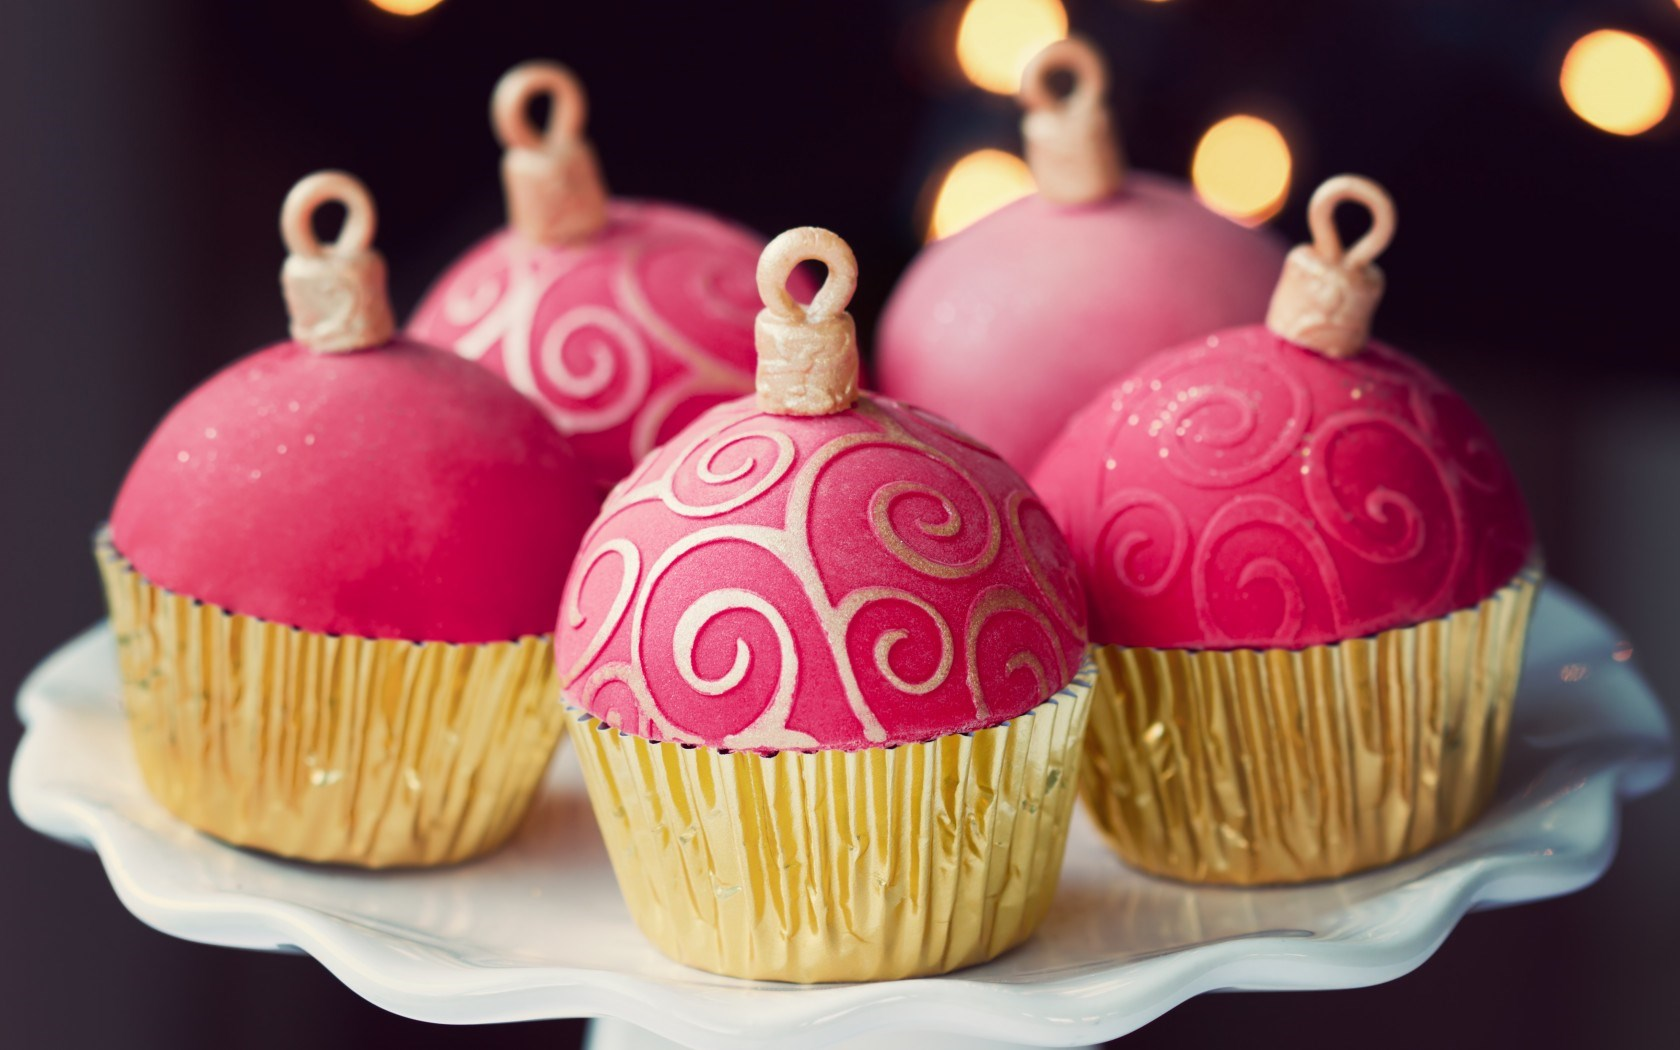 cute holiday cupcakes wallpaper 41096 1680x1050 px